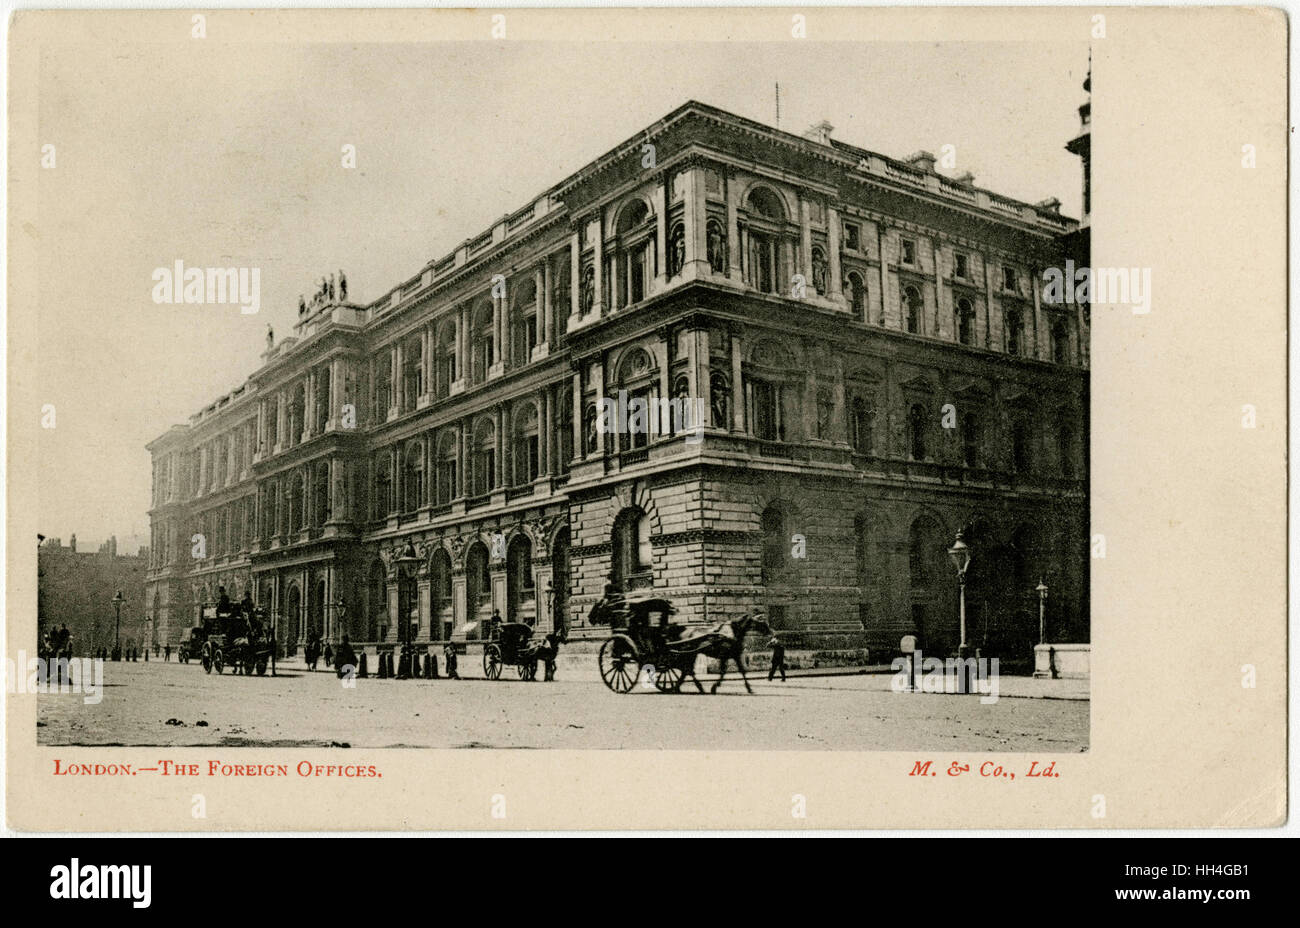 London - The Foreign Offices, Whitehall - Stock Image